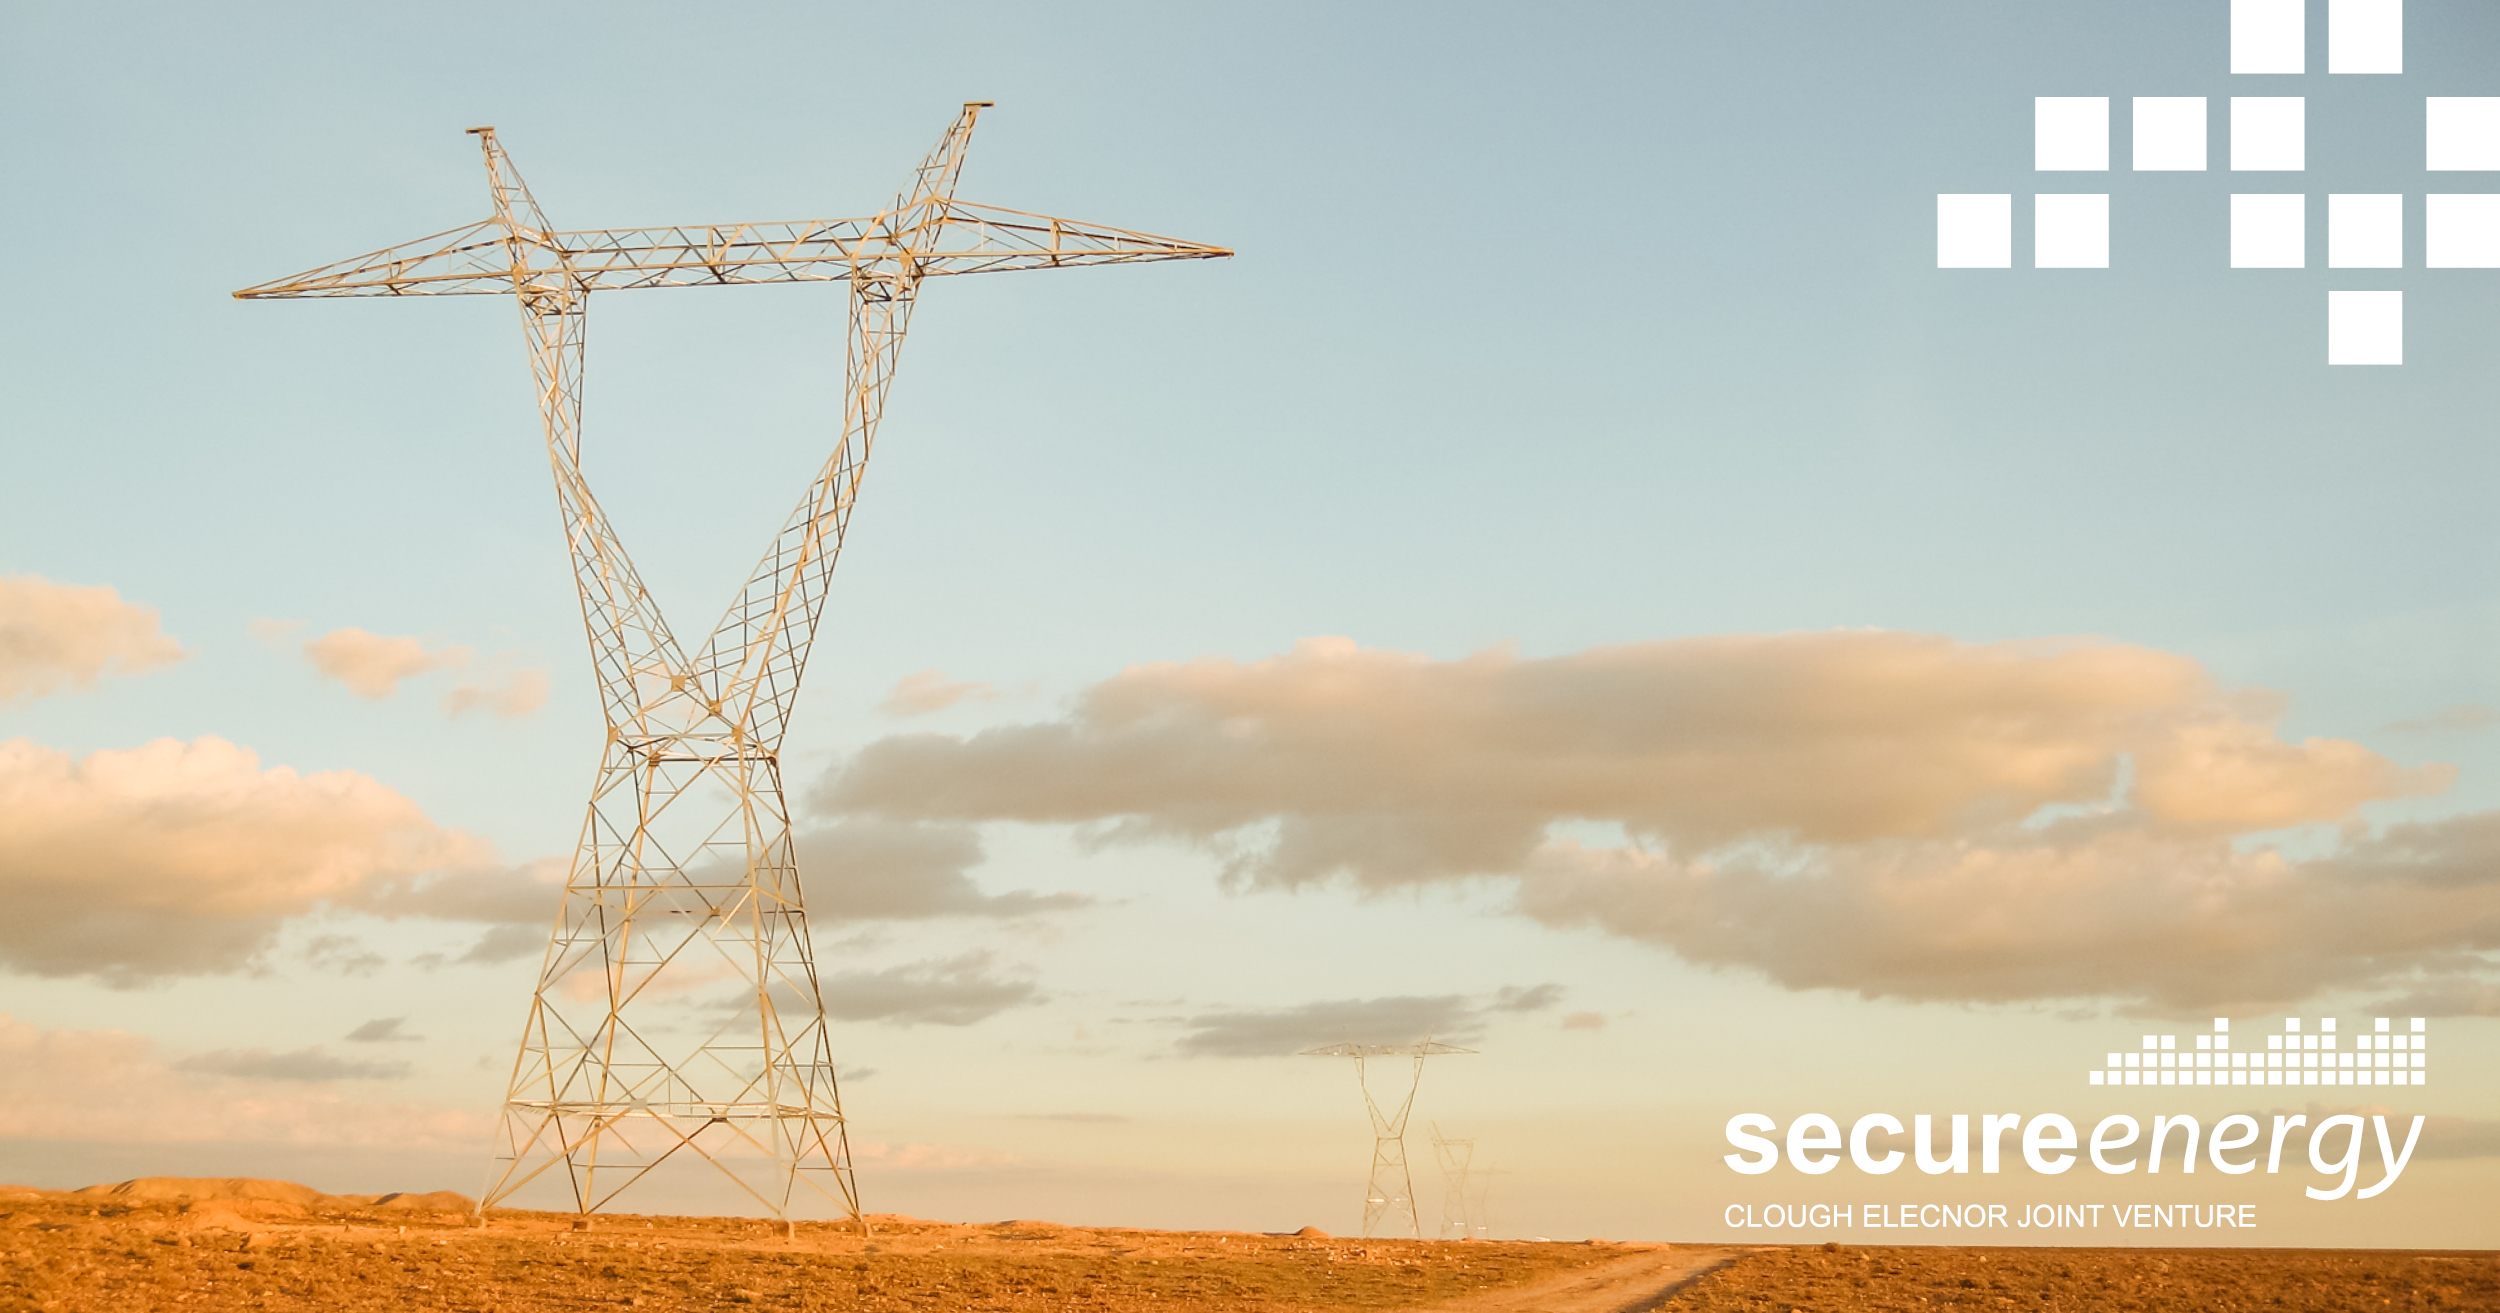 Clough Elecnor joint venture, SecureEnergy selected as contractor for Project EnergyConnect.